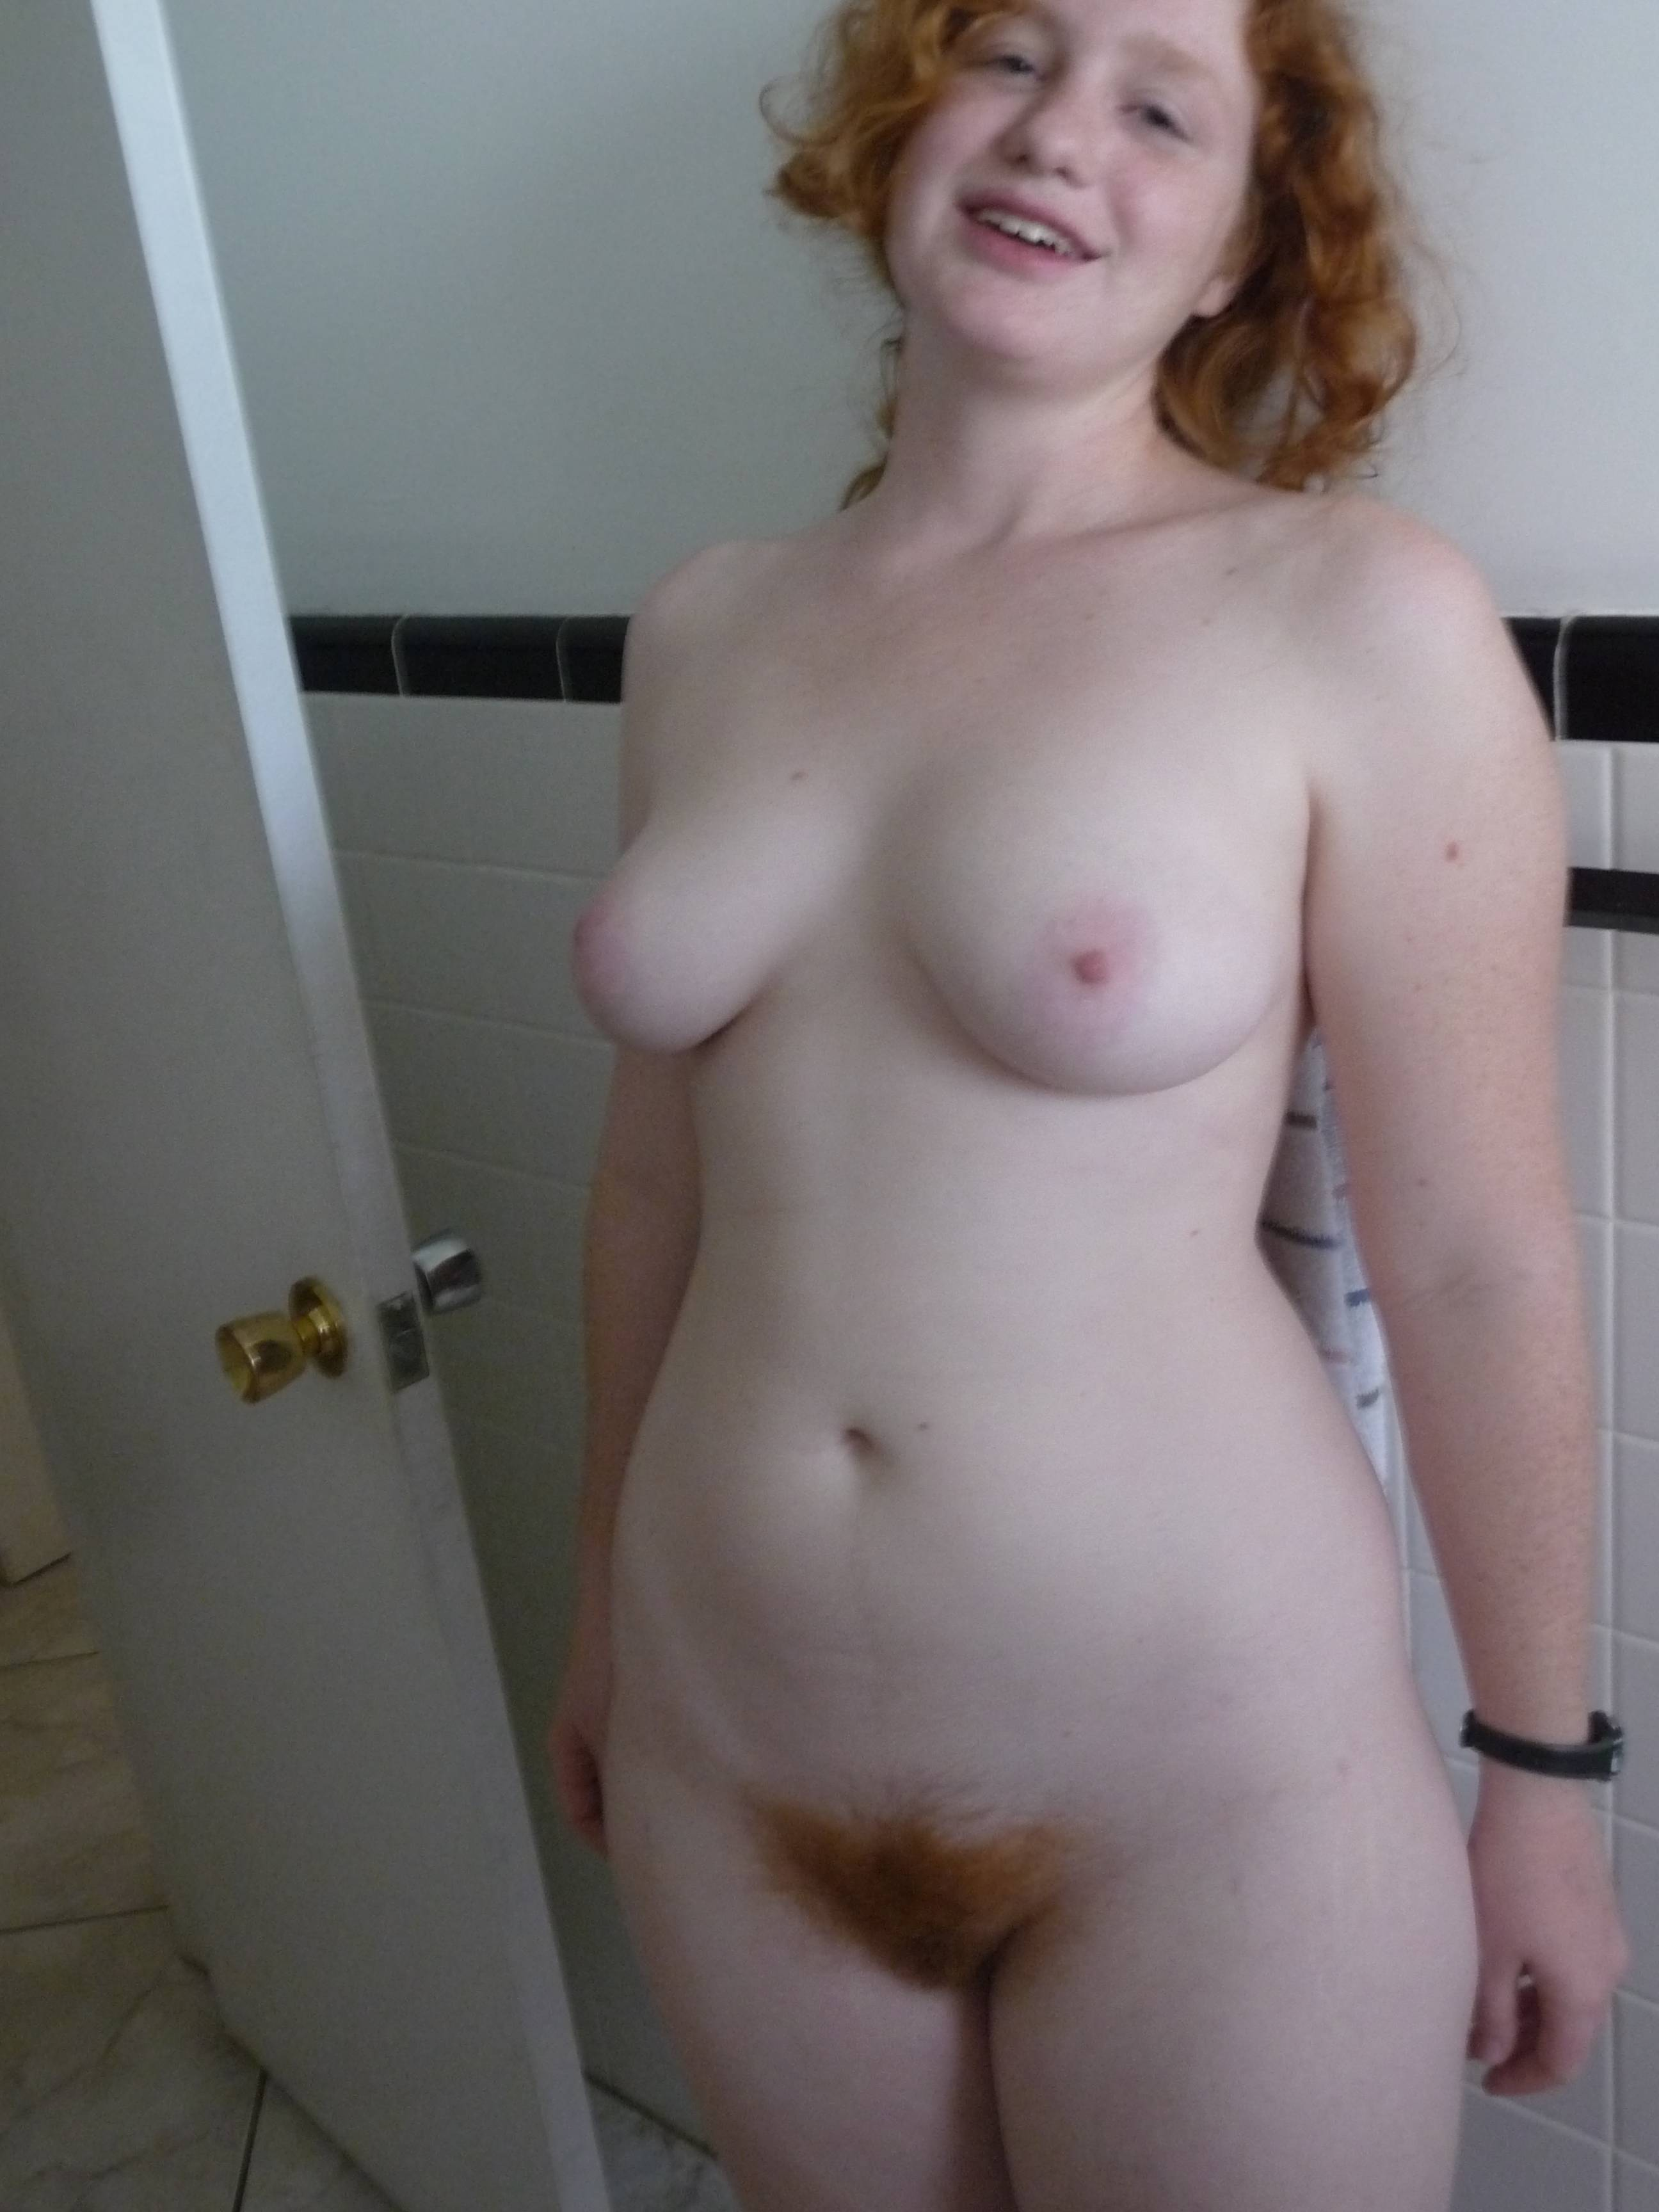 Abused chubby girls tube xxx trends pics